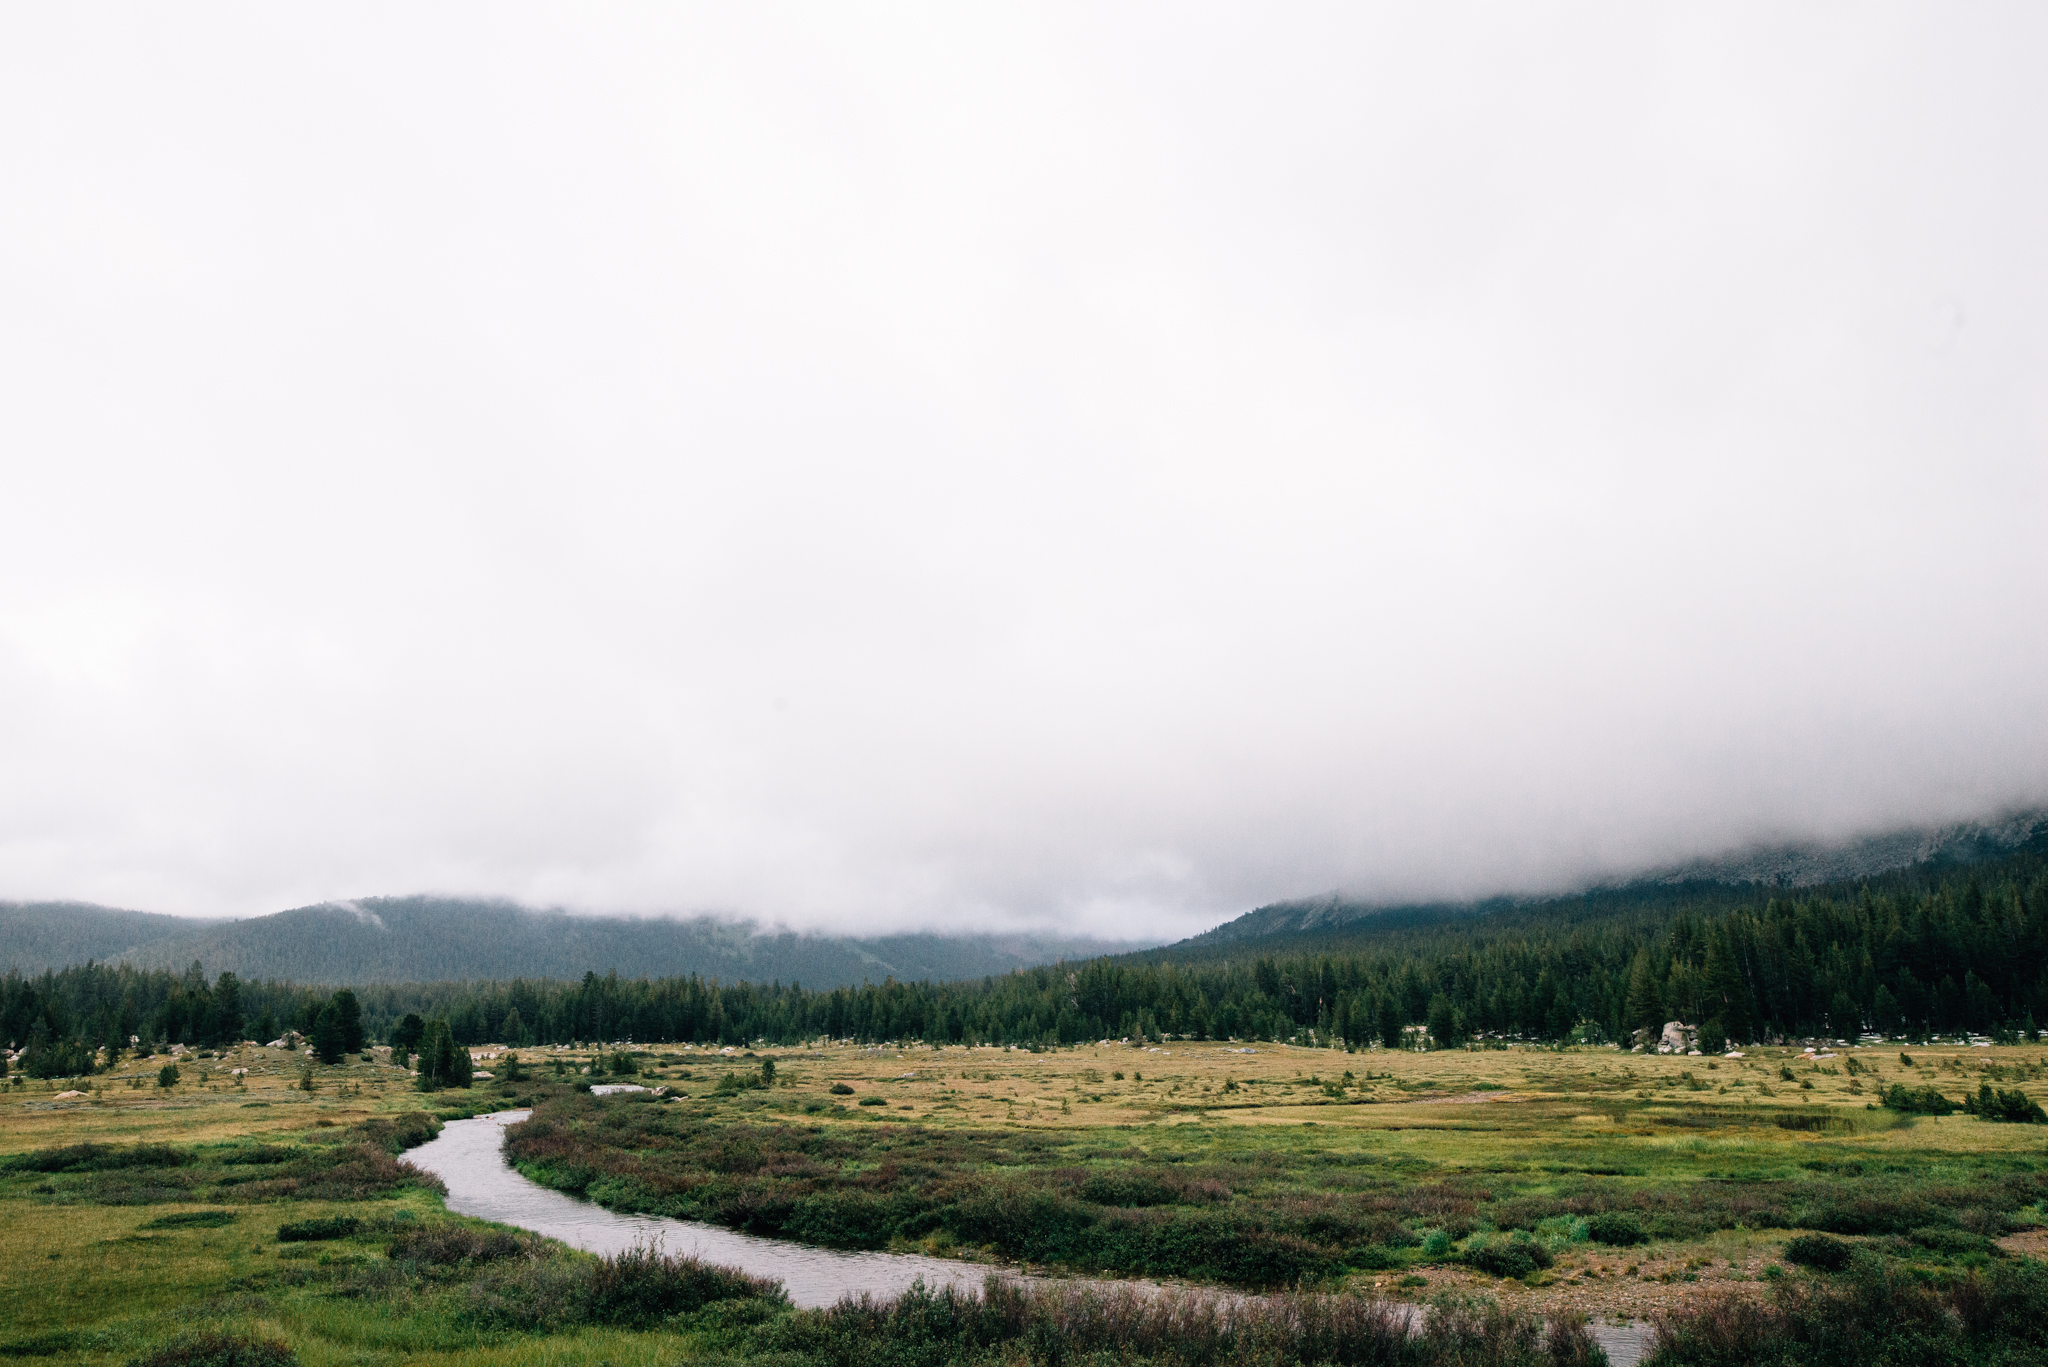 ©The Ryans Photography - Los Angeles Travel - Tuolomne Meadows Yosemite-012.jpg